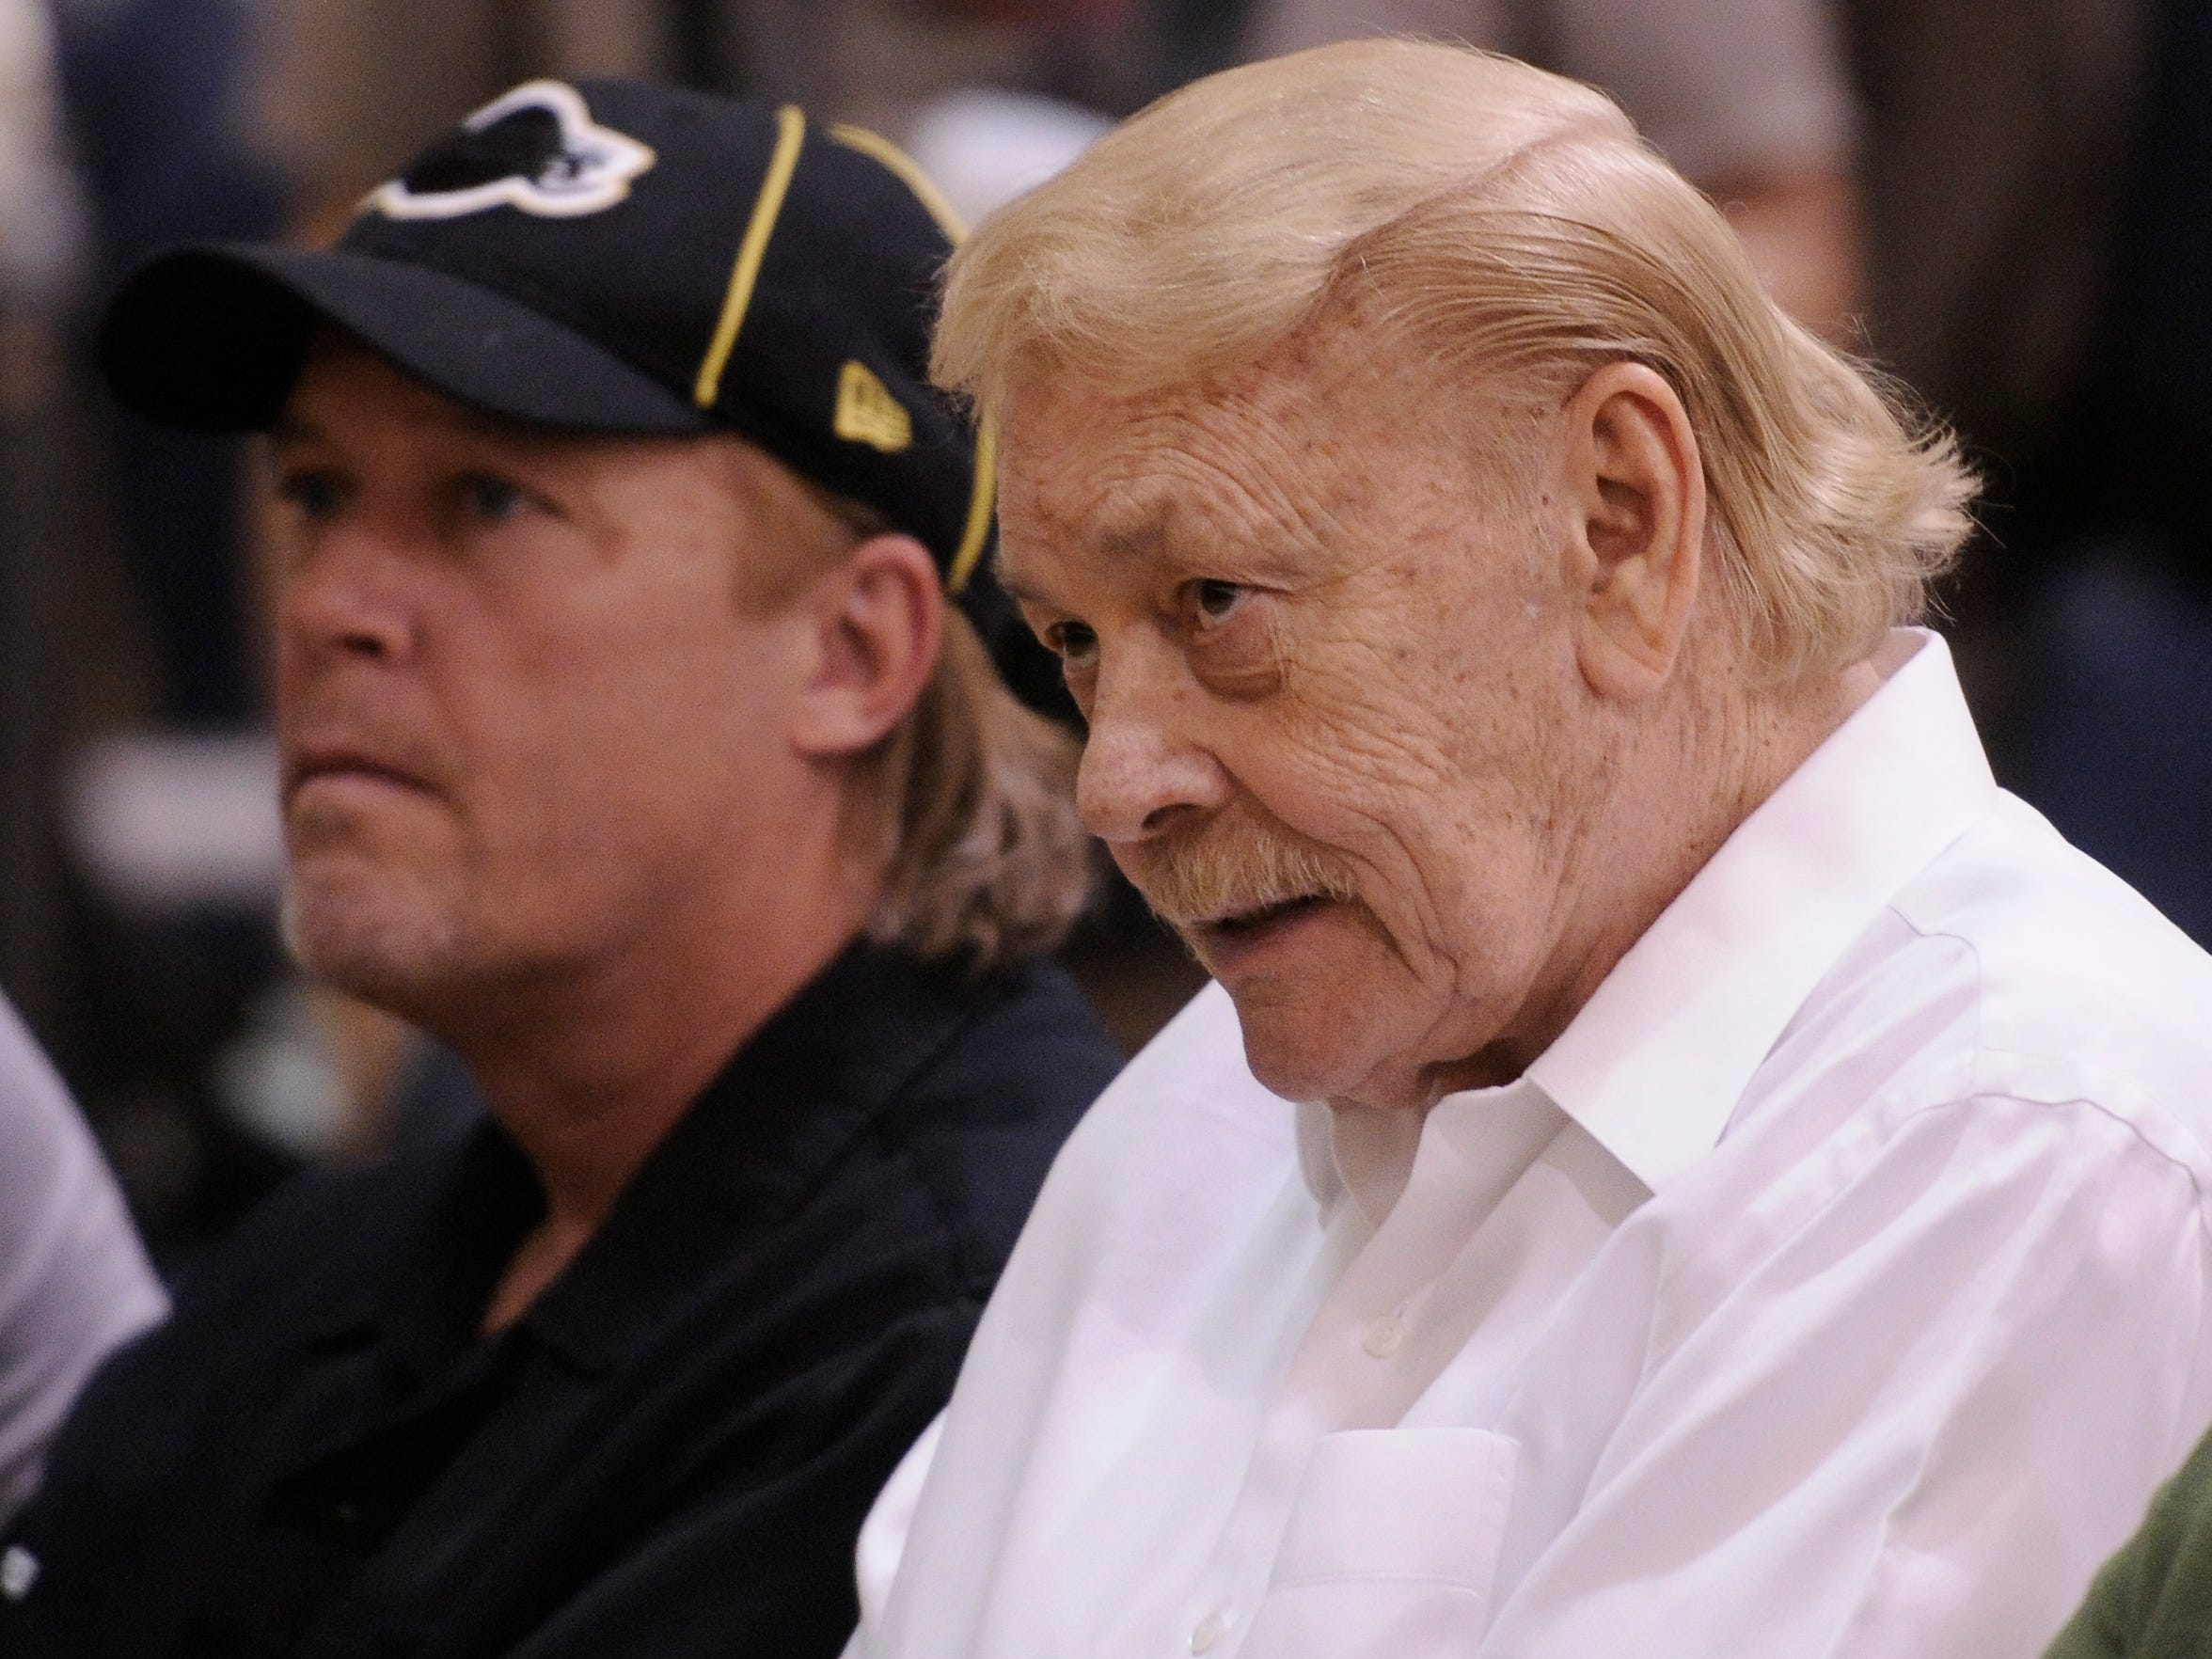 'It's almost like they want him to be a reincarnation of his dad, but he can't.' Former Lakers great Jerry West says about Jim Buss, left, and his father, Jerry.